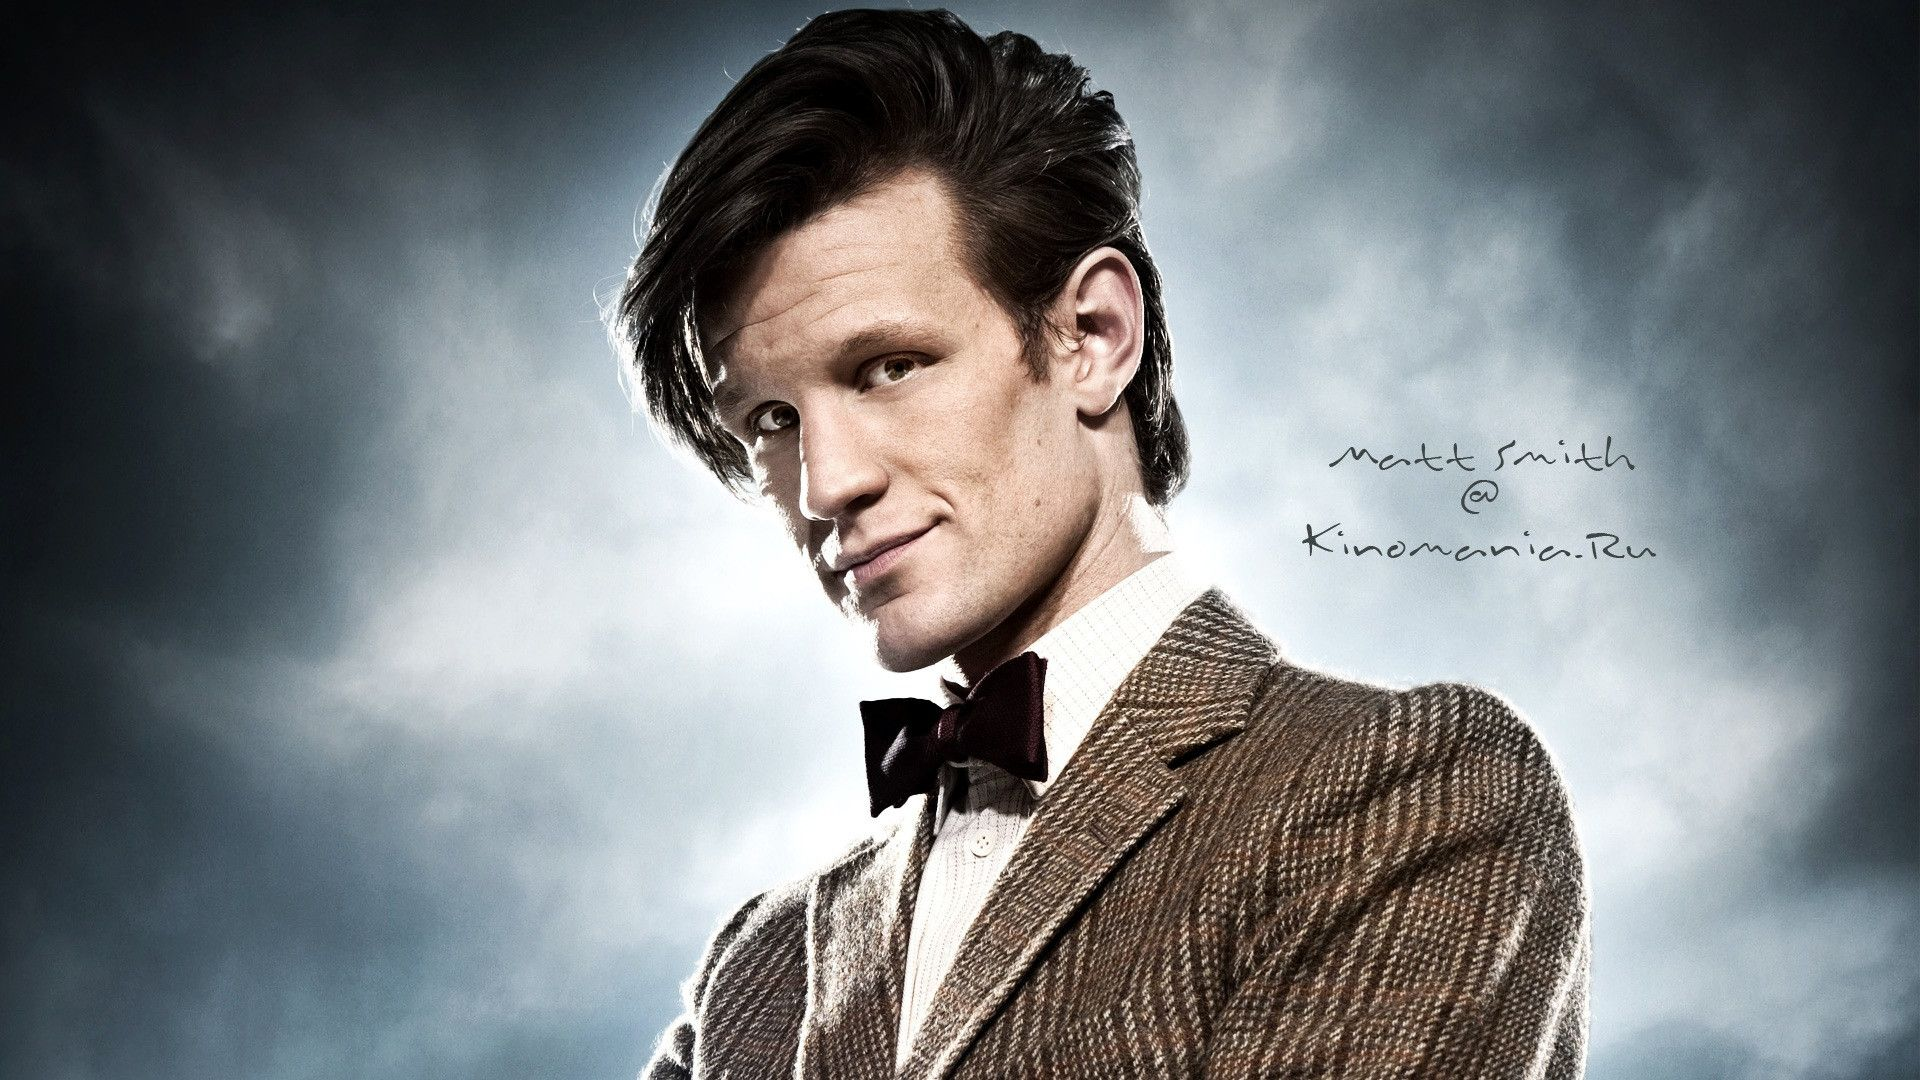 Matt Smith Wallpapers 1920x1080